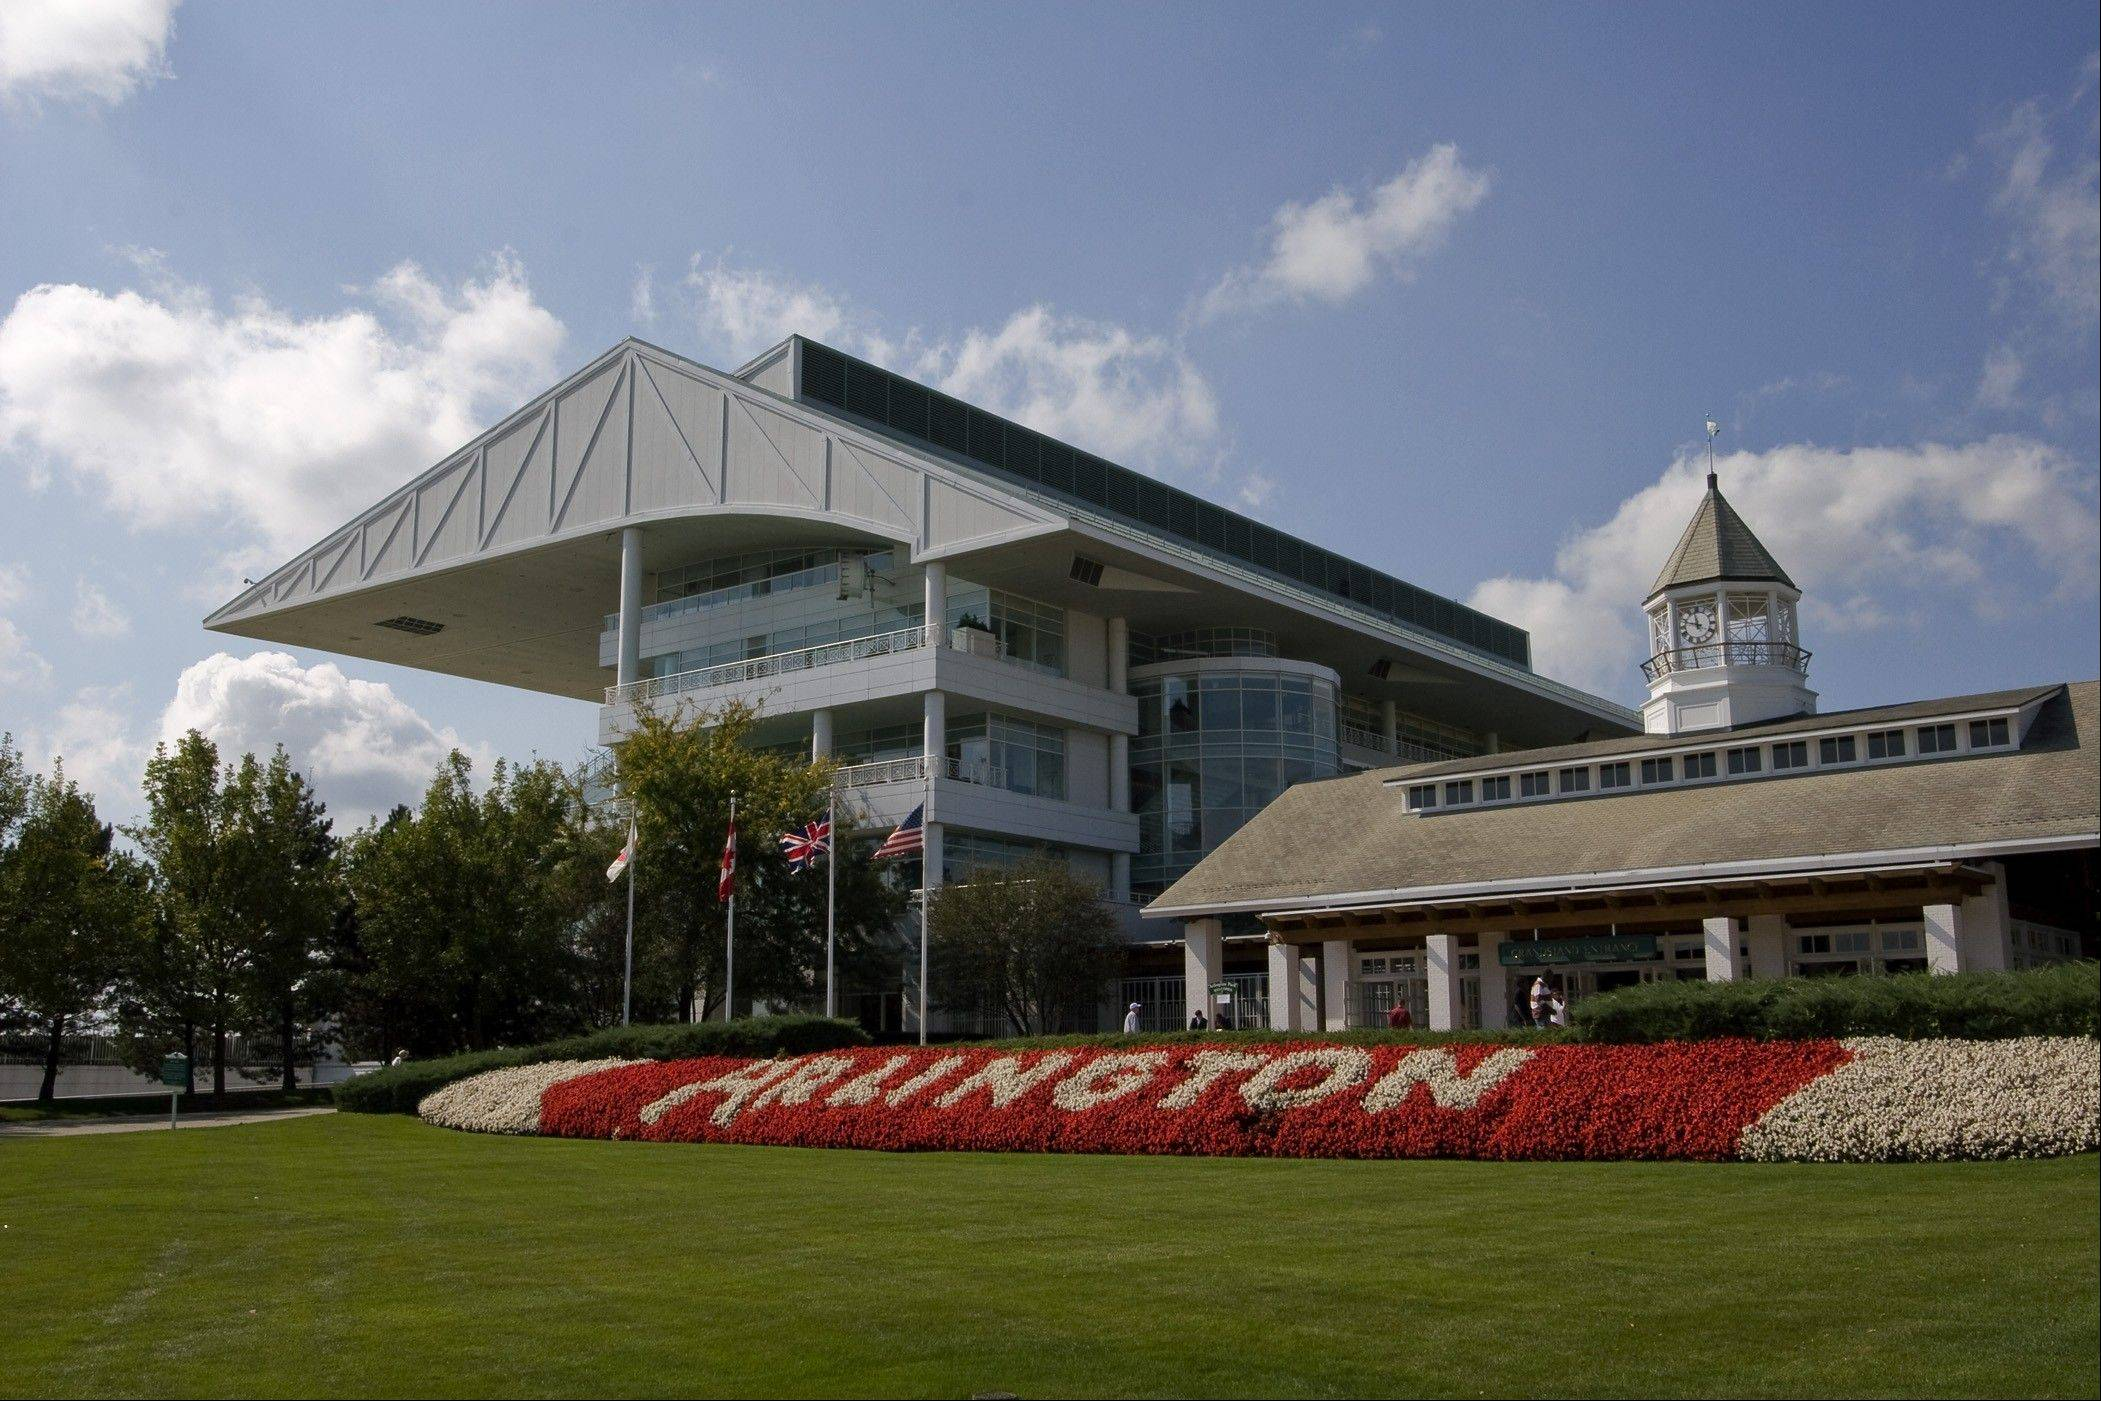 Arlington Park officials have filed a lawsuit challenging a racing dates decision by the Illinois Racing Board that some industry experts believe will cost the track about $1 million in revenue.